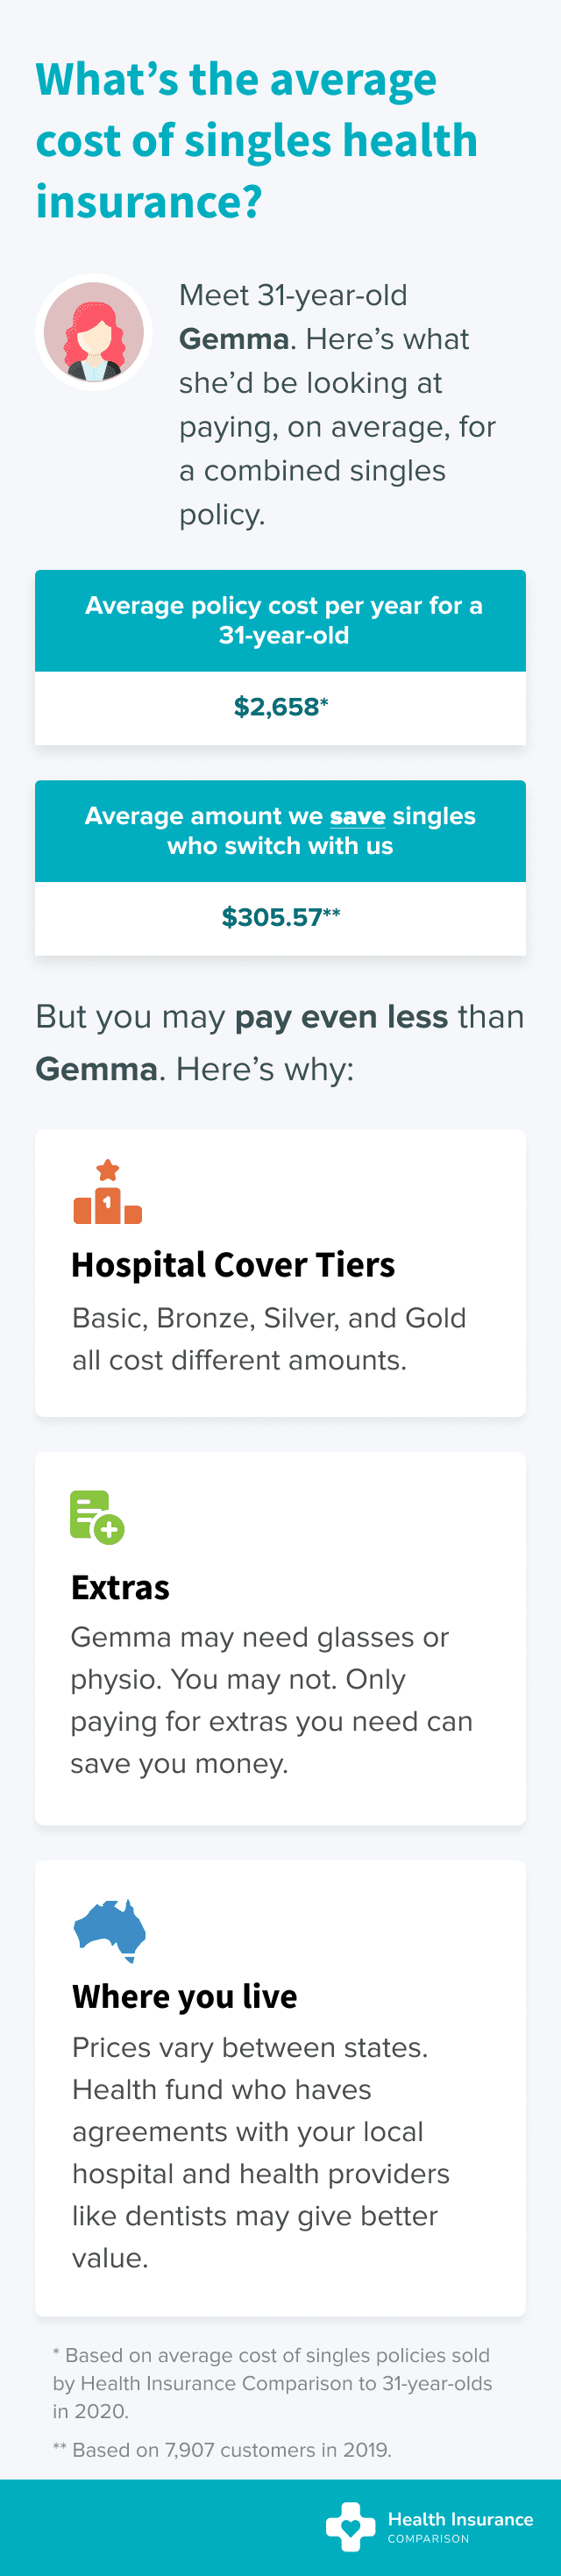 What's the average cost of health insurance for a single young Australian.